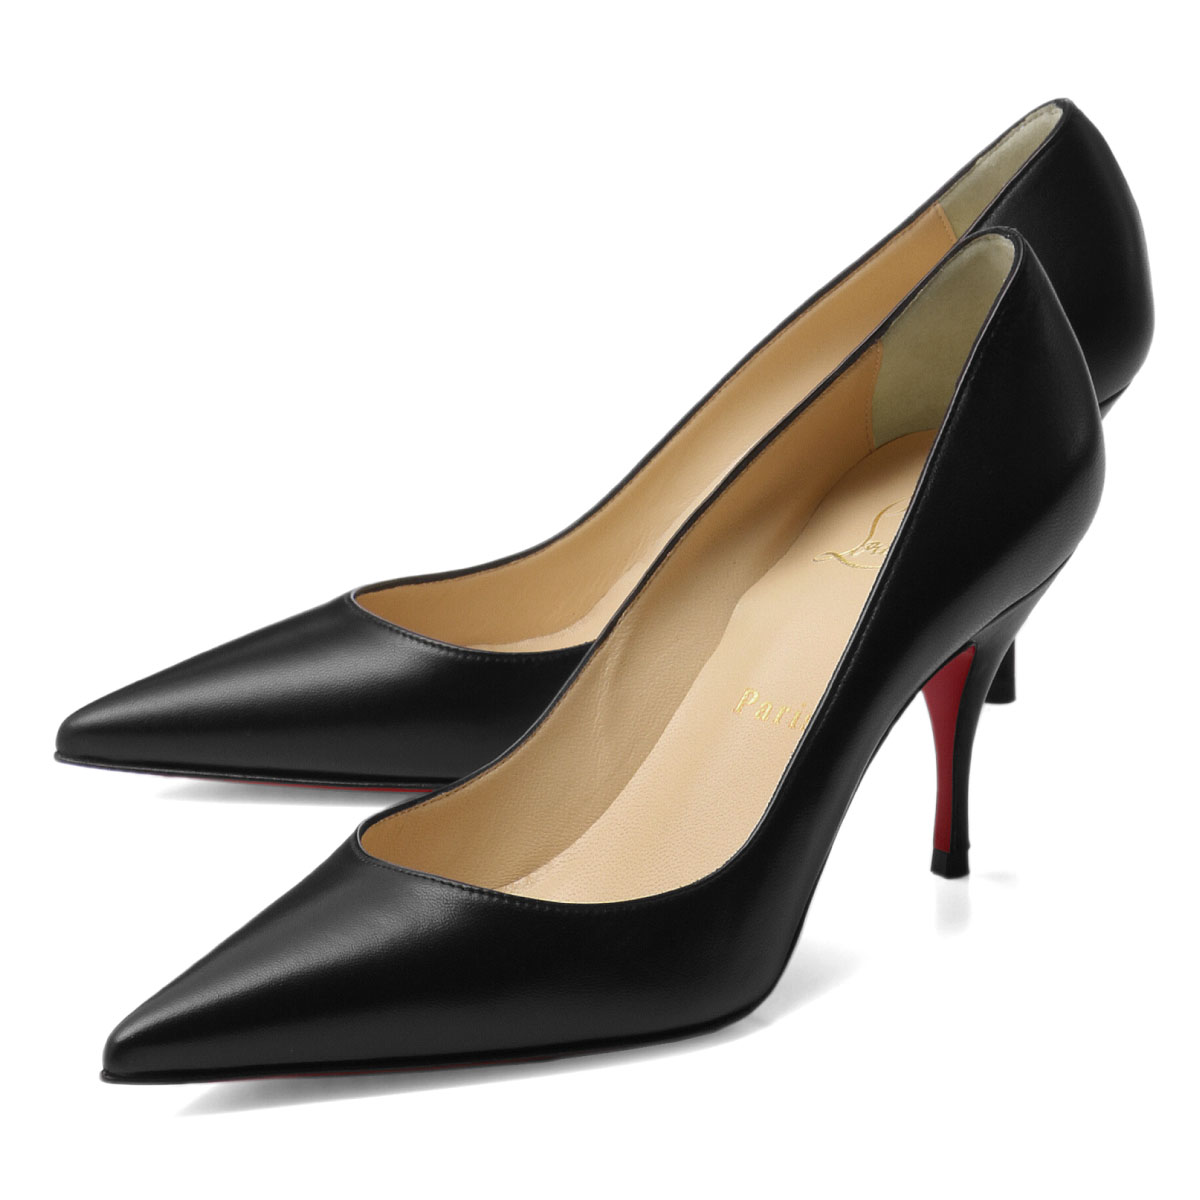 sale retailer 1bacc d02b4 クリスチャンルブタン Christian Louboutin shoes Lady's 3190531 BK01 pointed toe pumps  CLARE Clare BLACK black